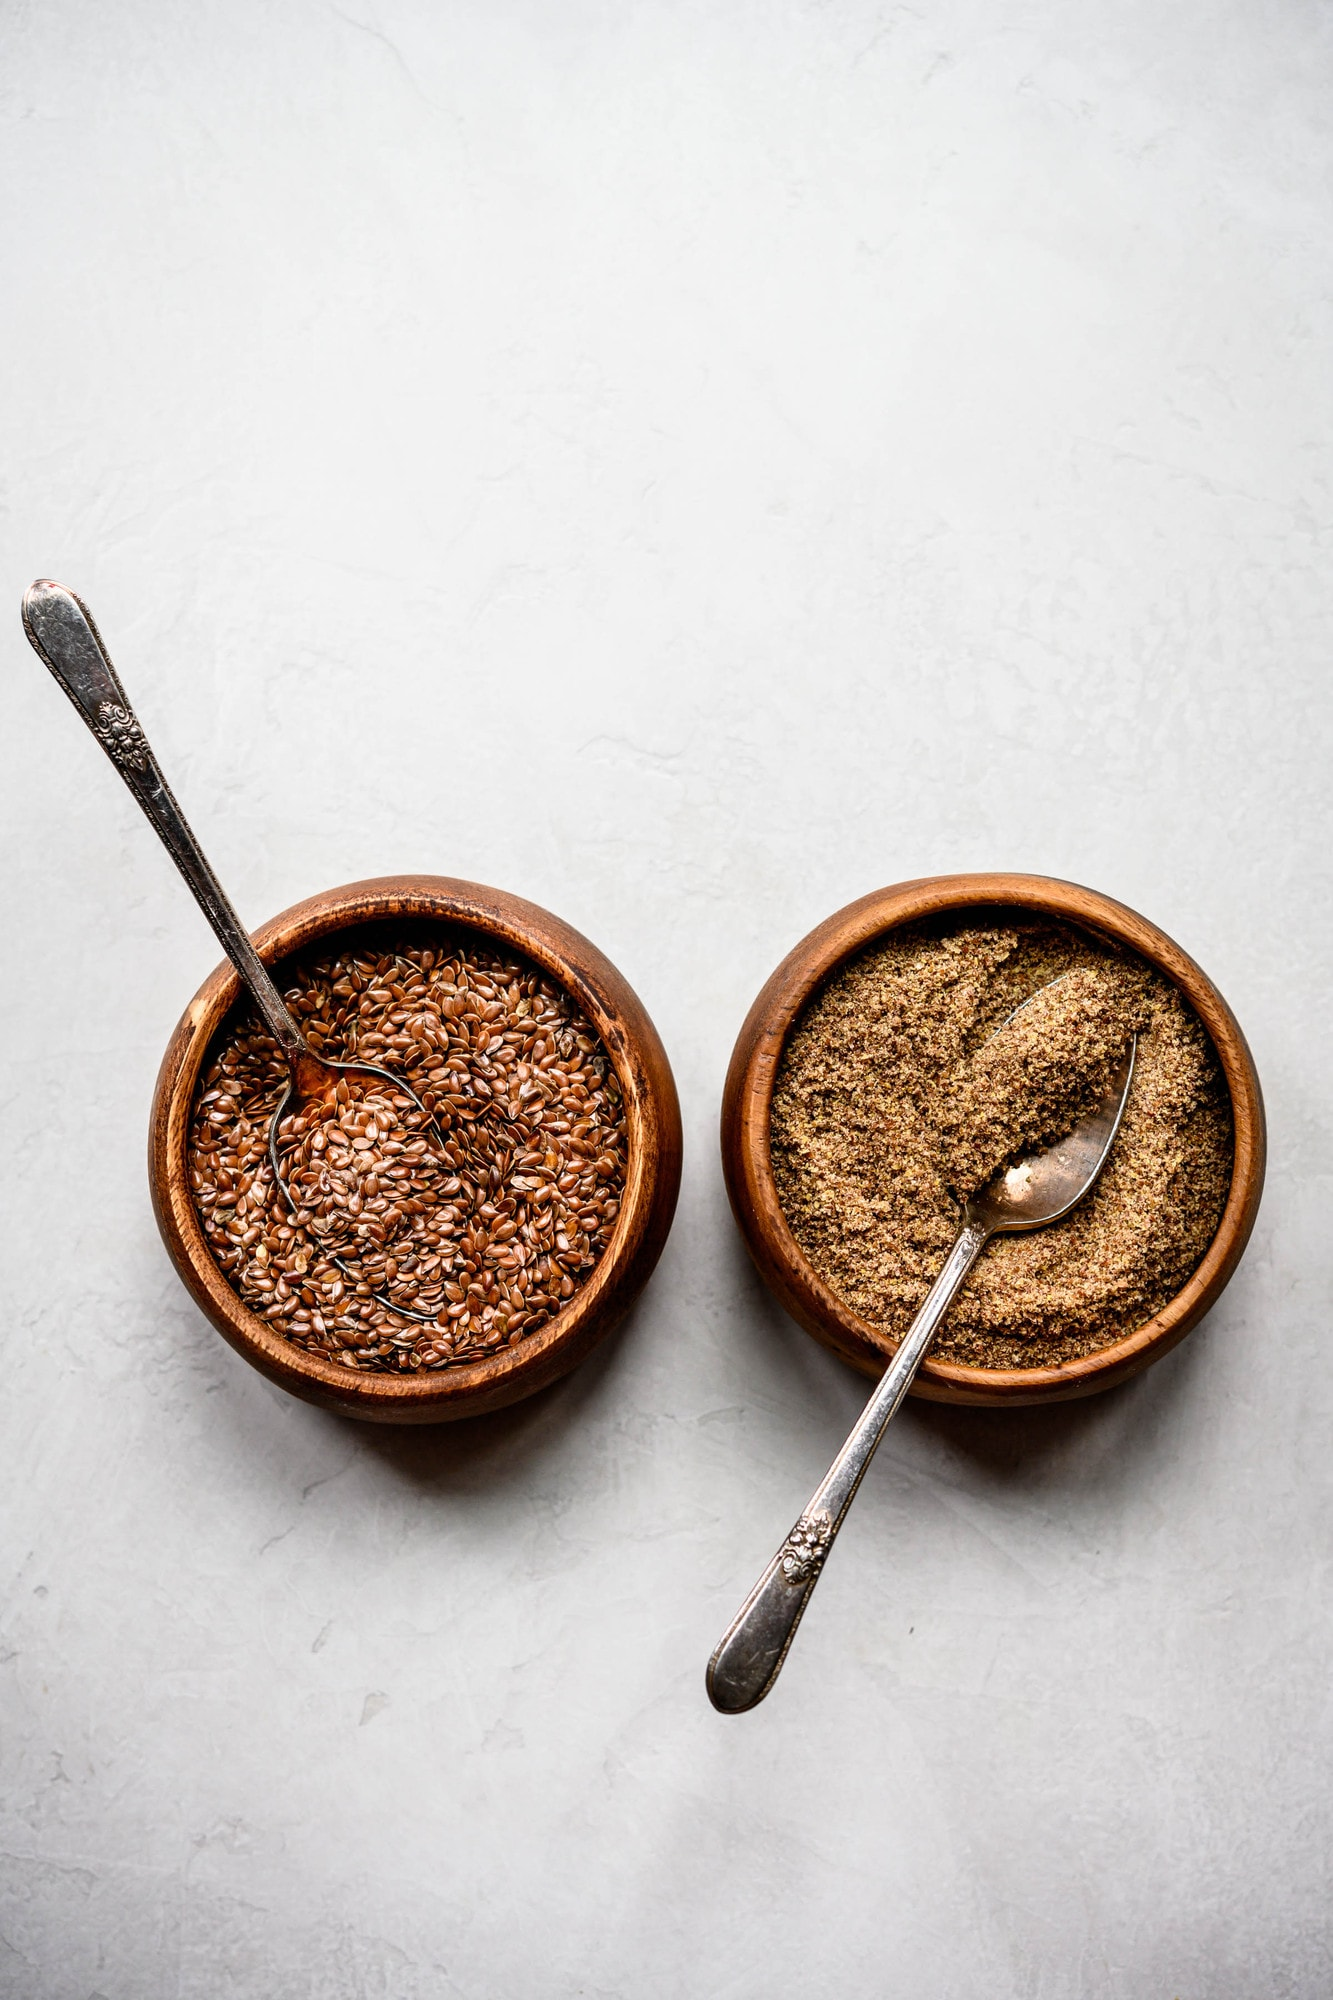 Overhead flax seed and flax meal in two small wooden bowls on white background